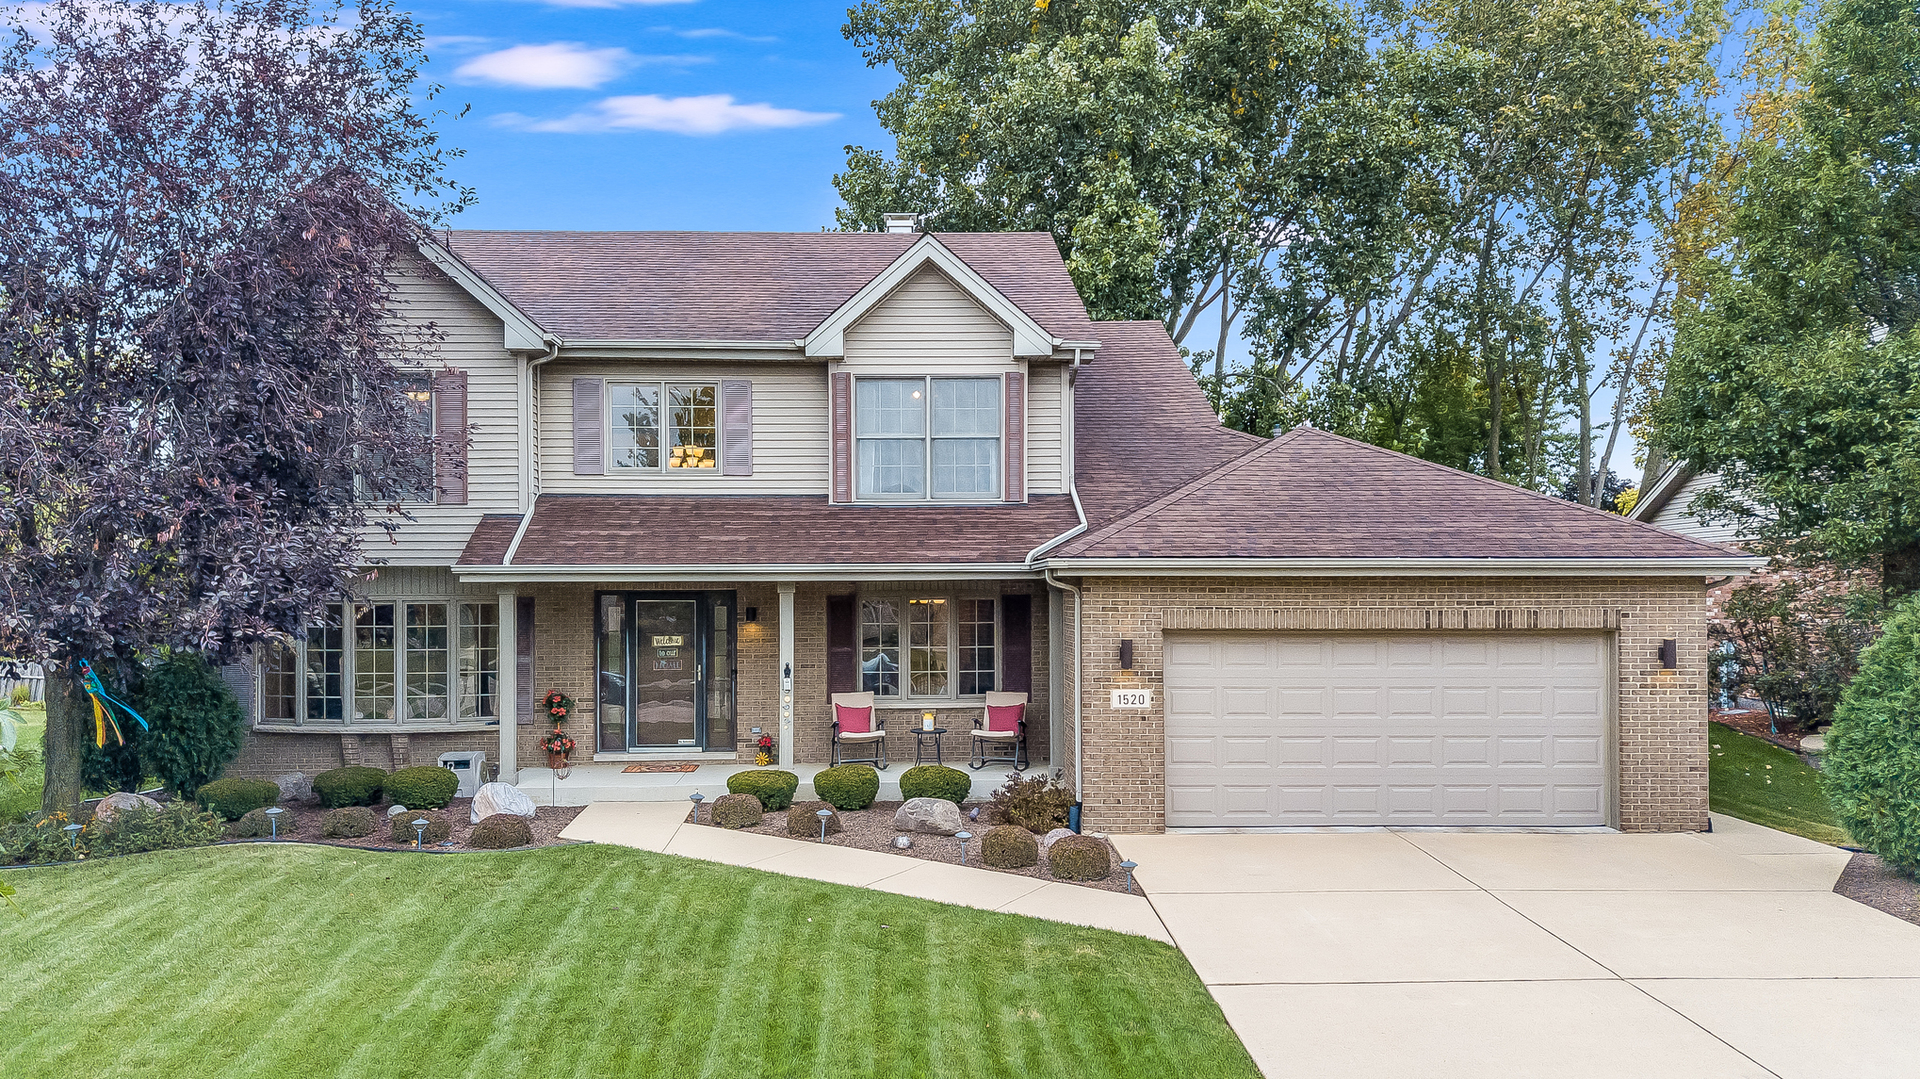 """2,600SF 4 BEDROOM, 3 1/2 BATH 2-STORY IN FARMINGDALE. THERE ARE HOUSES AND THEN THERE ARE HOMES. THIS ONE'S THE HOME FOR YOU! 2-STORY ENTRYWAY LEADS TO SEPARATE LIVING ROOM OR DINING ROOM. COMFORT AND COZY FAMILY ROOM HAS BRICK FIREPLACE & CEILING FAN. CUSTOM KITCHEN HAS 32"""" OAK CABINETS/CORIAN COUNTERTOPS/BREAKFAST BAR & CANNED LIGHTING. ALL BEDROOMS ARE LOCATED UPSTAIRS WITH STANDOUT MASTER BEDROOM FEATURING TRAY CEILING/WALK-IN MASTER CLOSET & PRIVATE BATH W/DUAL VANITY. FINISHED BASEMENT HAS POSS/5TH BEDROOM ALONG WITH FULL BATHROOM. UNIQUE PROPERTY AS THE HOME HAS 7 SEPARATE HVAC ZONES FOR EACH PERSON TO SET THEIR OWN ROOM TEMPERATURE. ADD'L UPDATES INCLUDE NEW ROOF/EDO (2016), HWT (2018), DISHWASHER & MICROWAVE (2020). THE HOME IS PROFESSIONALLY LANDSCAPED WITH IRRIGATION SYSTEM. CUSTOM BRICK PAVER PATIO W/SEAT WALLS/WALKWAY LIGHTING/SHED & FENCED YARD. HOME IS SETUP APP FRIENDLY & RADON REDUCTION SYSTEM IS ALREADY INSTALLED."""